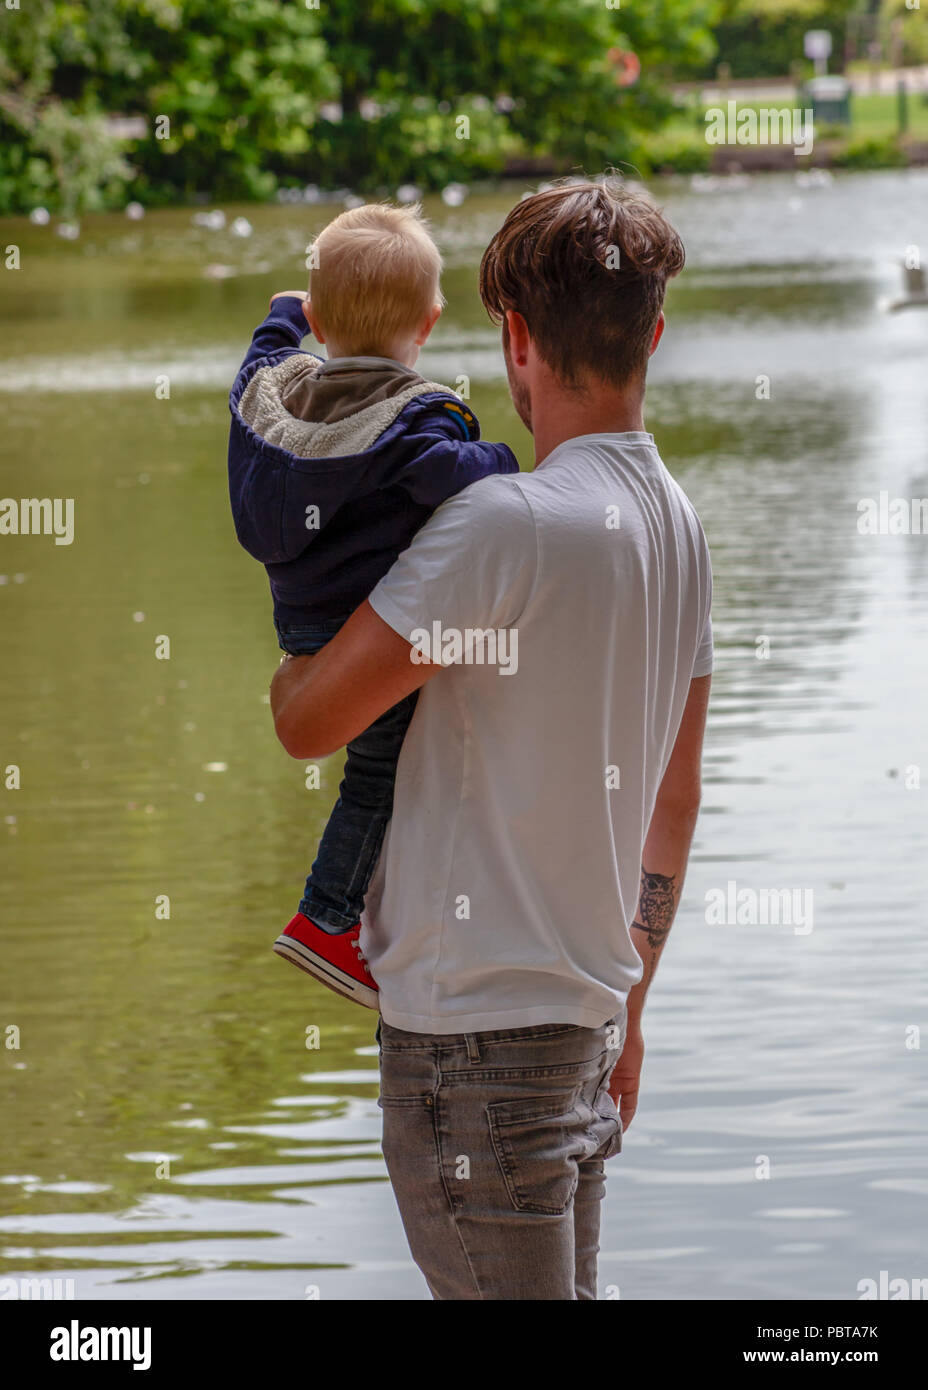 Father holding his toddler son at a lake - Stock Image